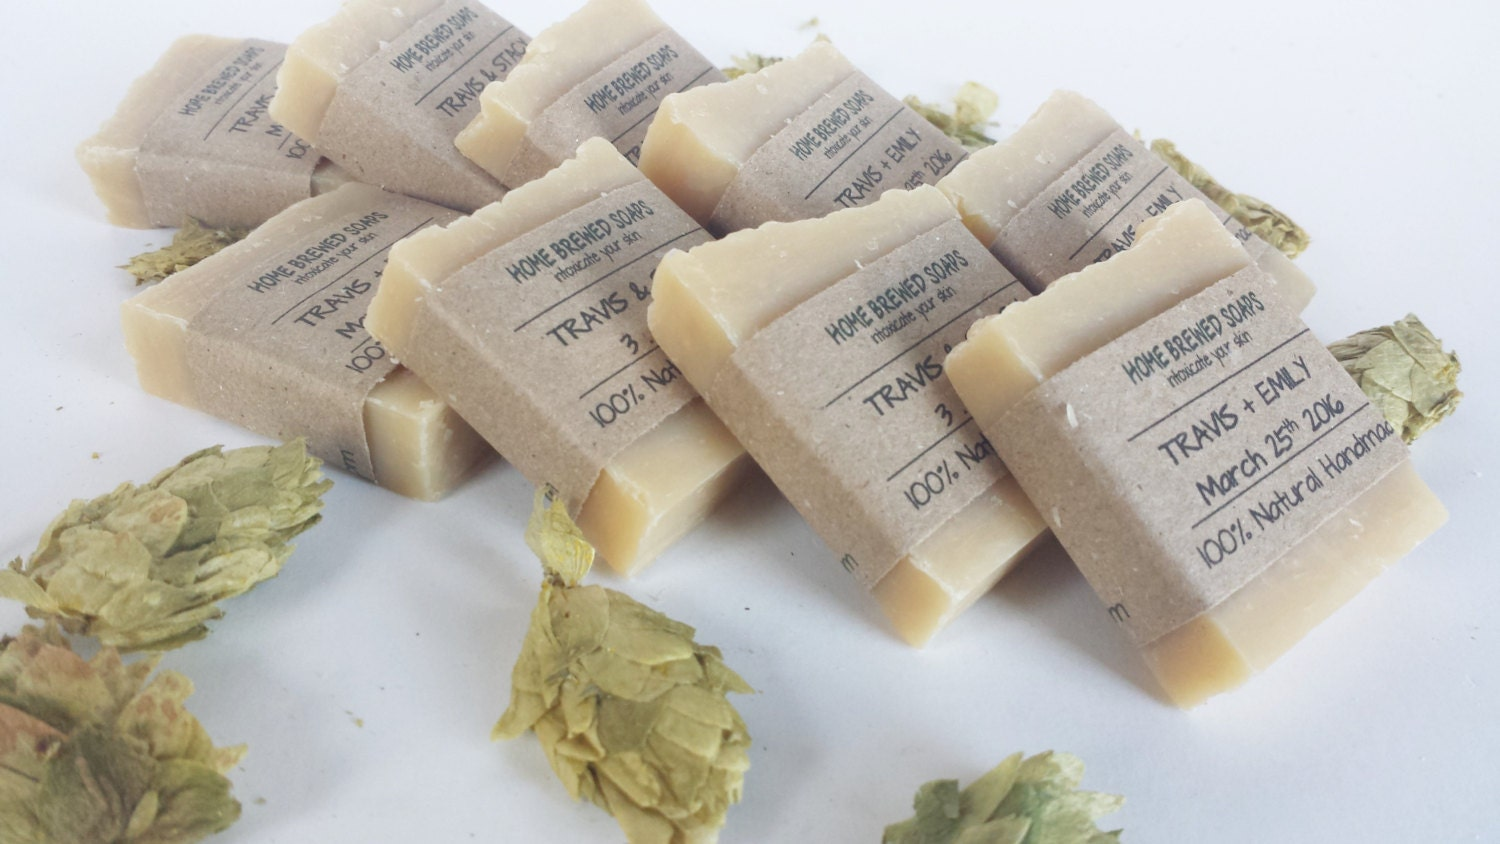 unique wedding favor fall wedding favors Beer Wedding Favor Handmade Soap Favors Wedding Favors Soap Favors Unique Wedding Favors Barn Wedding Favor Rustic Wedding Favor